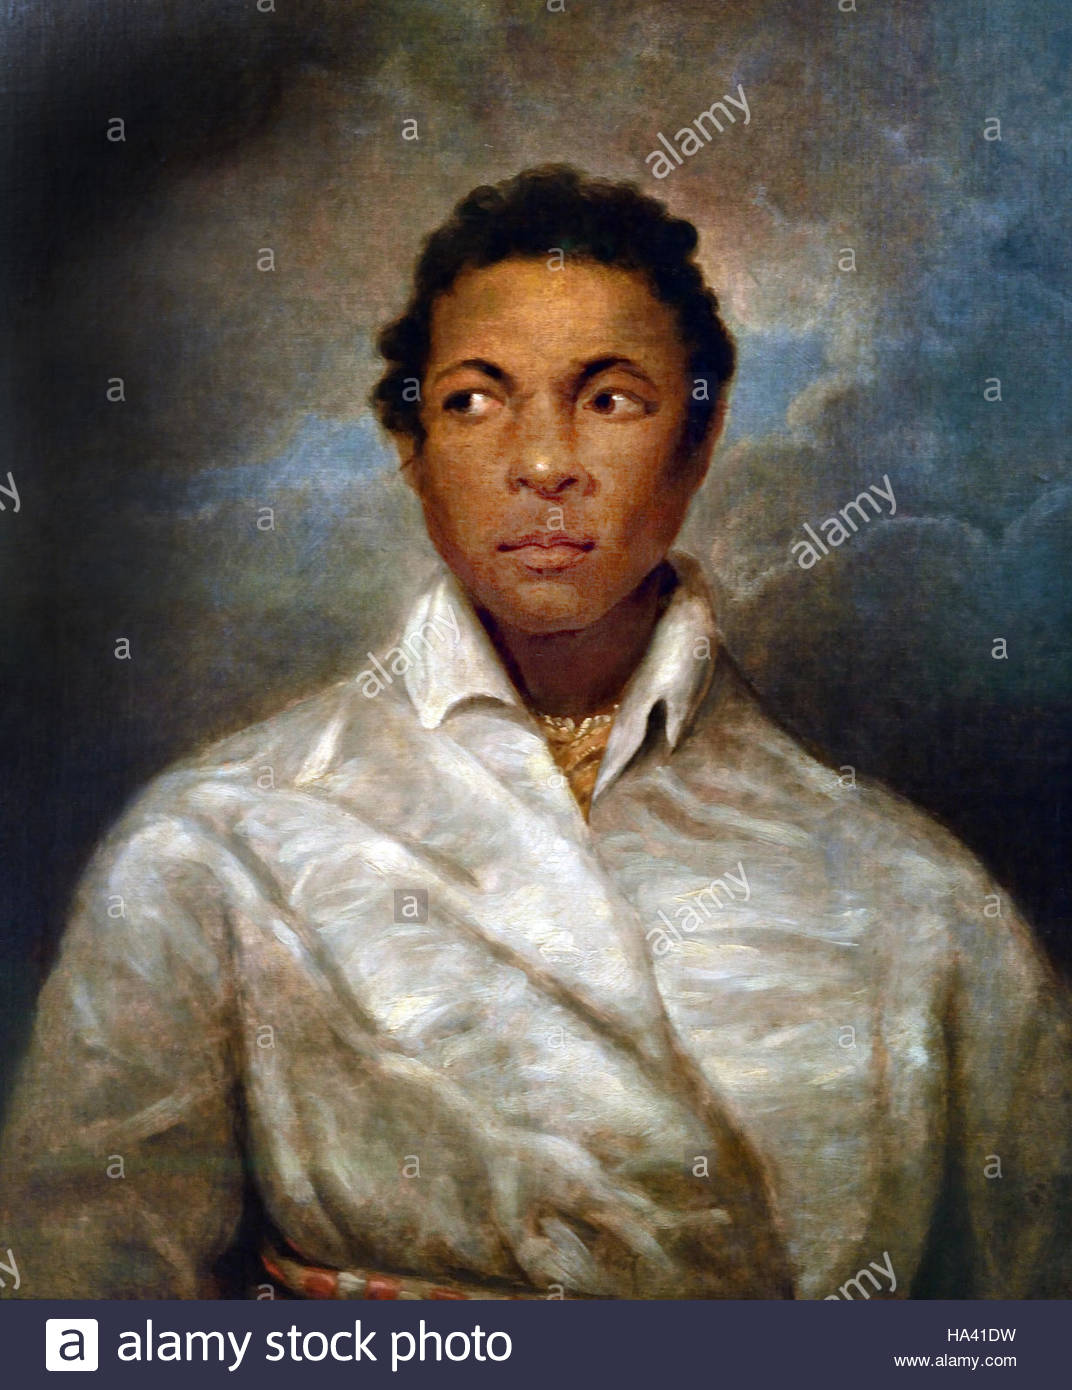 a biography of ira frederick aldridge an american and british actor Person from a portrait: ira frederick aldridge, the first black othello  the biography of this extraordinary african-american actor (especially famous in  the british library holds books about aldridge in various languages.